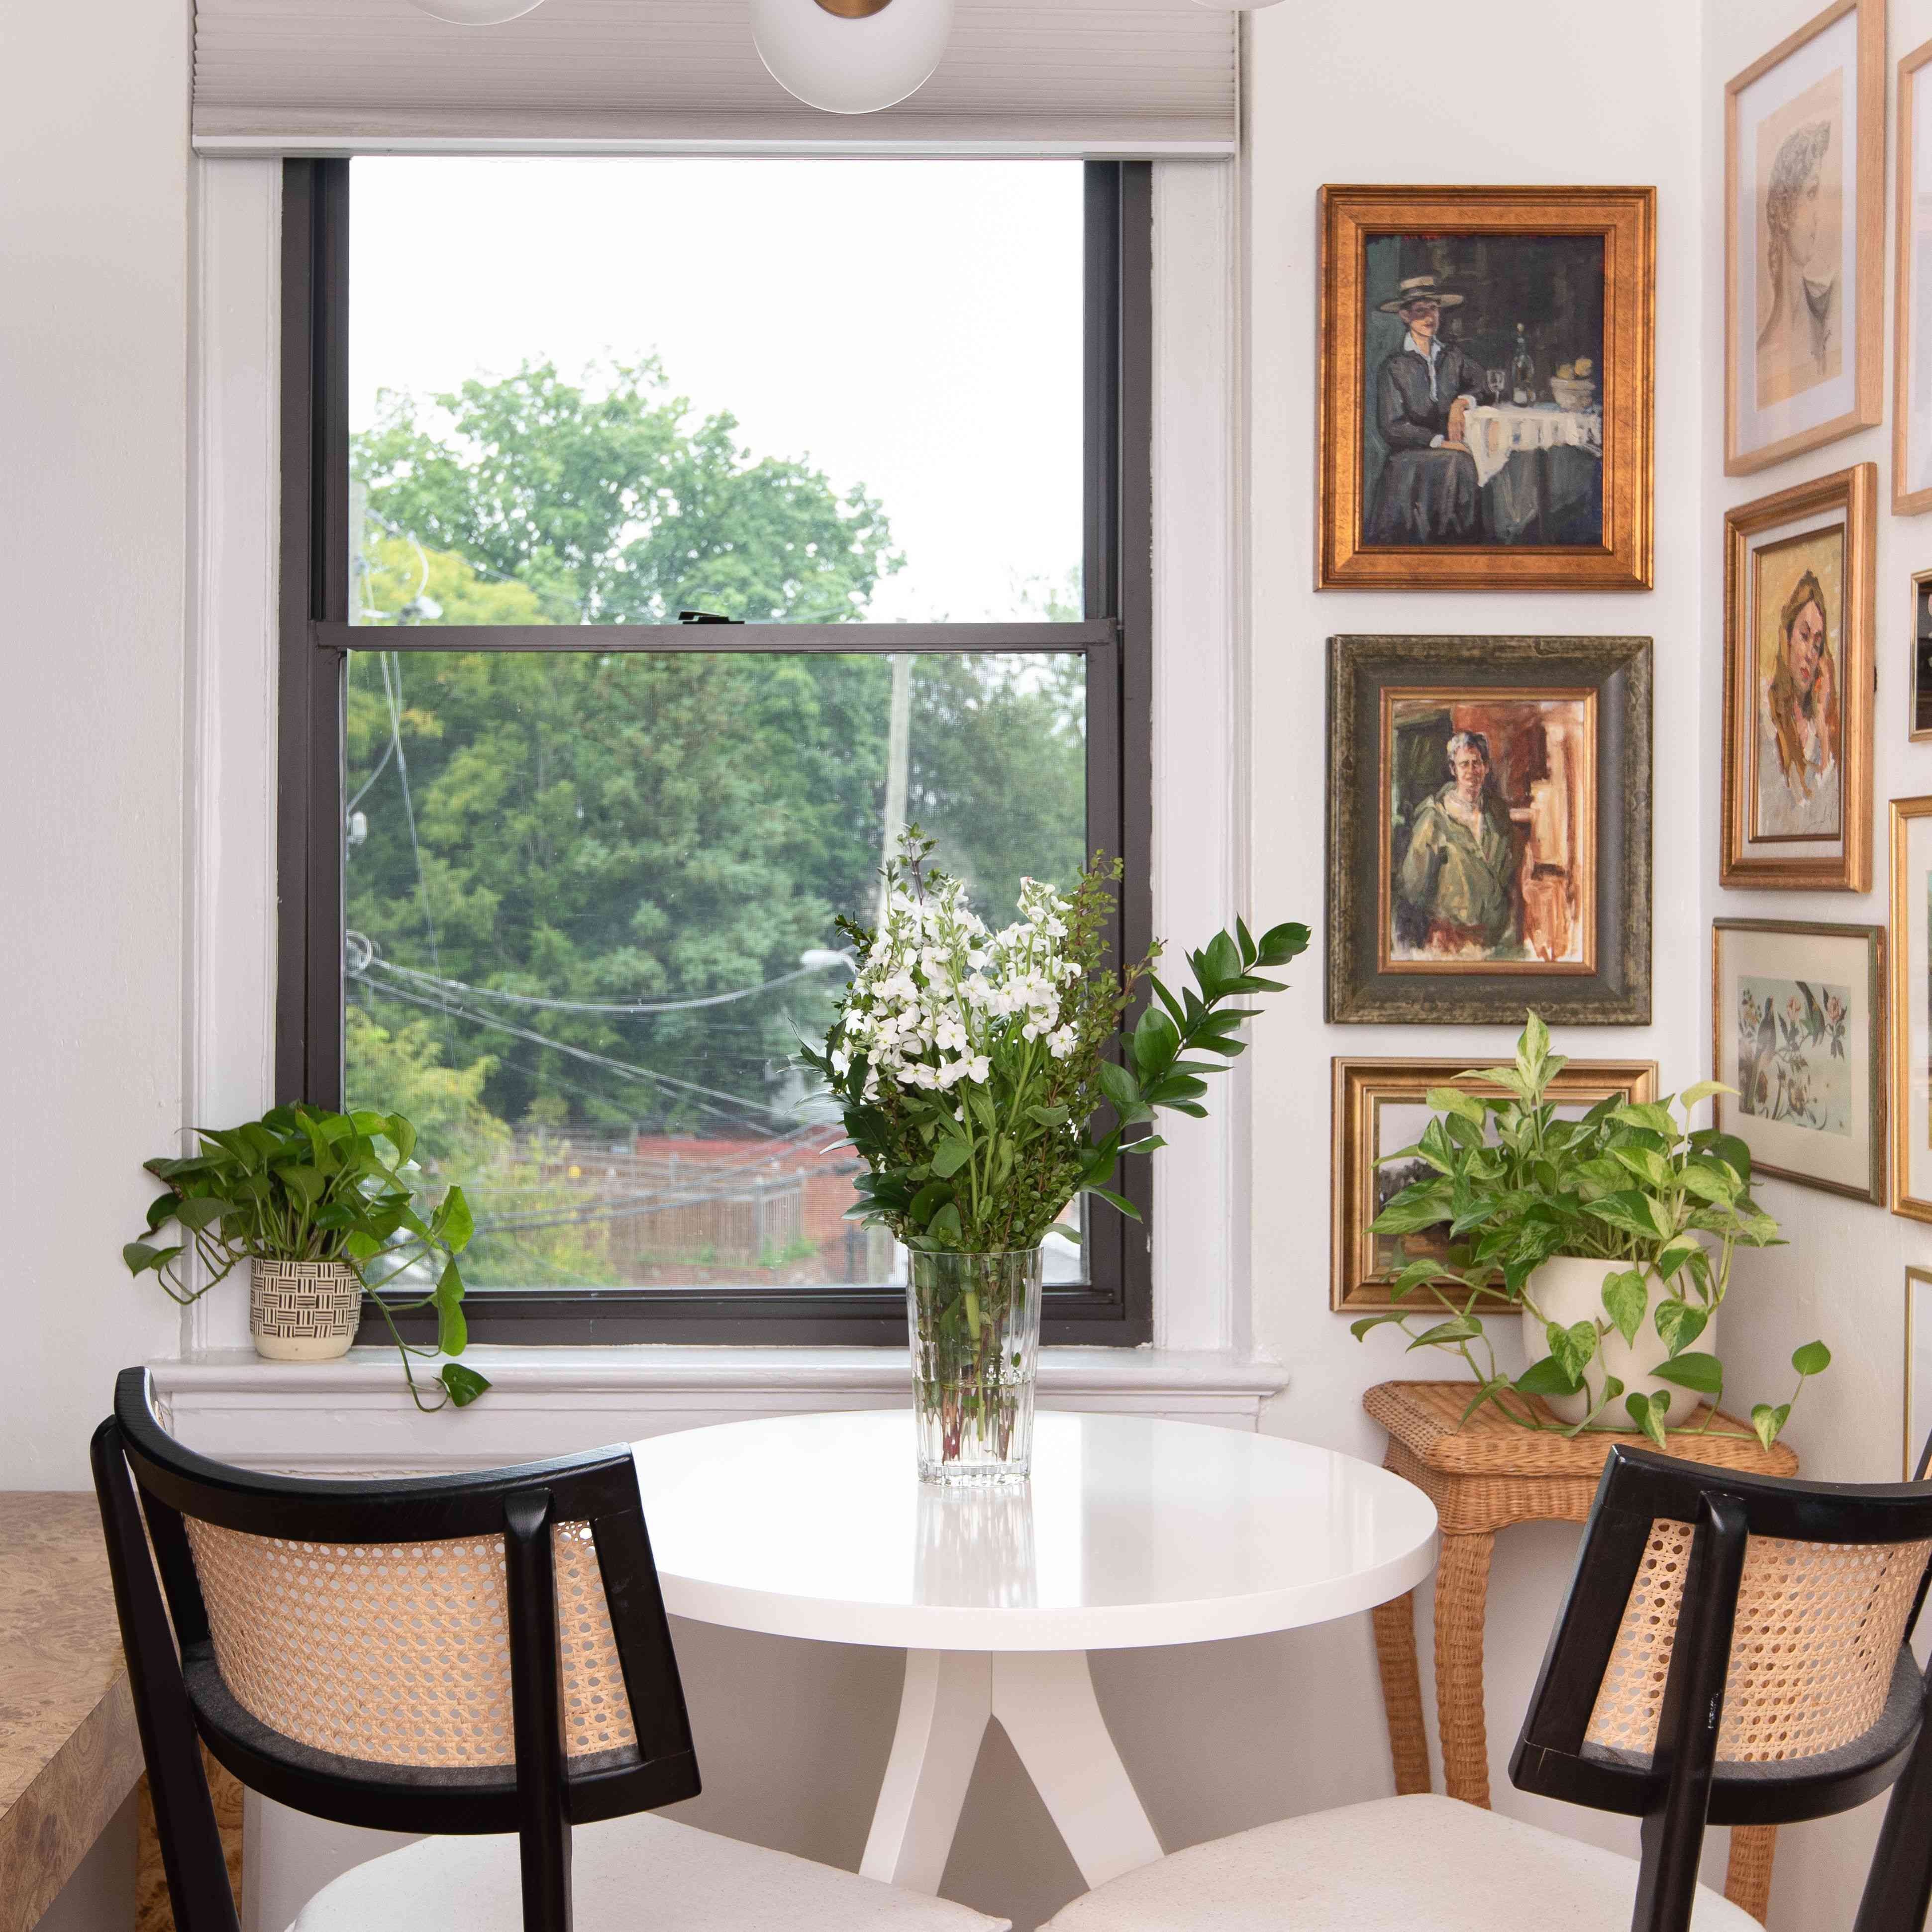 Dining nook with corner full of traditional antique art.